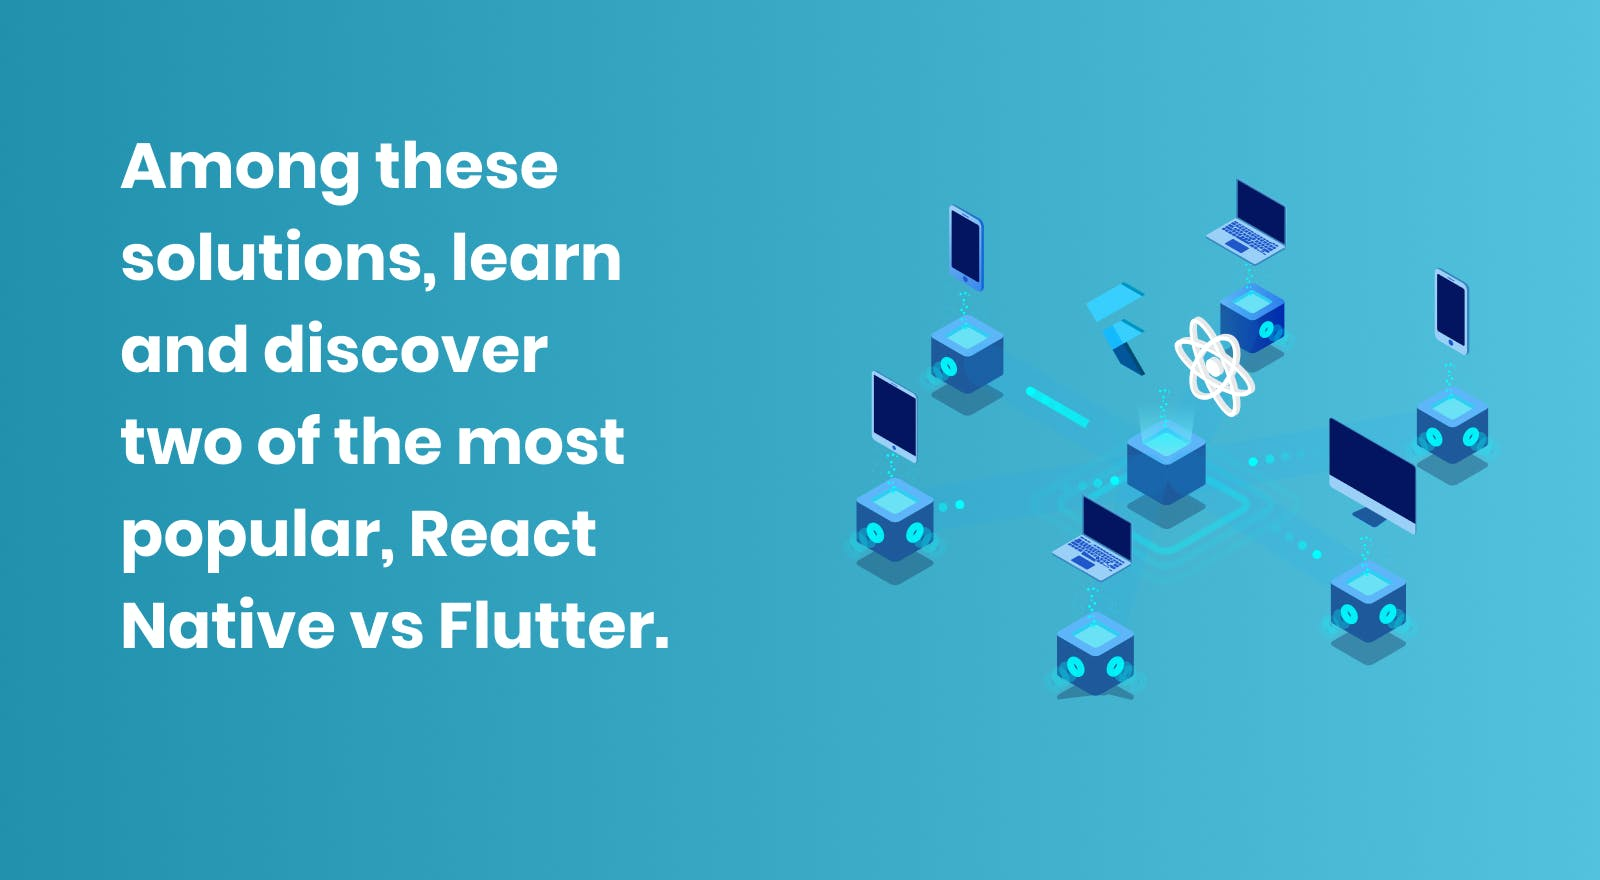 React Native vs Flutter: two of the most popular solutions